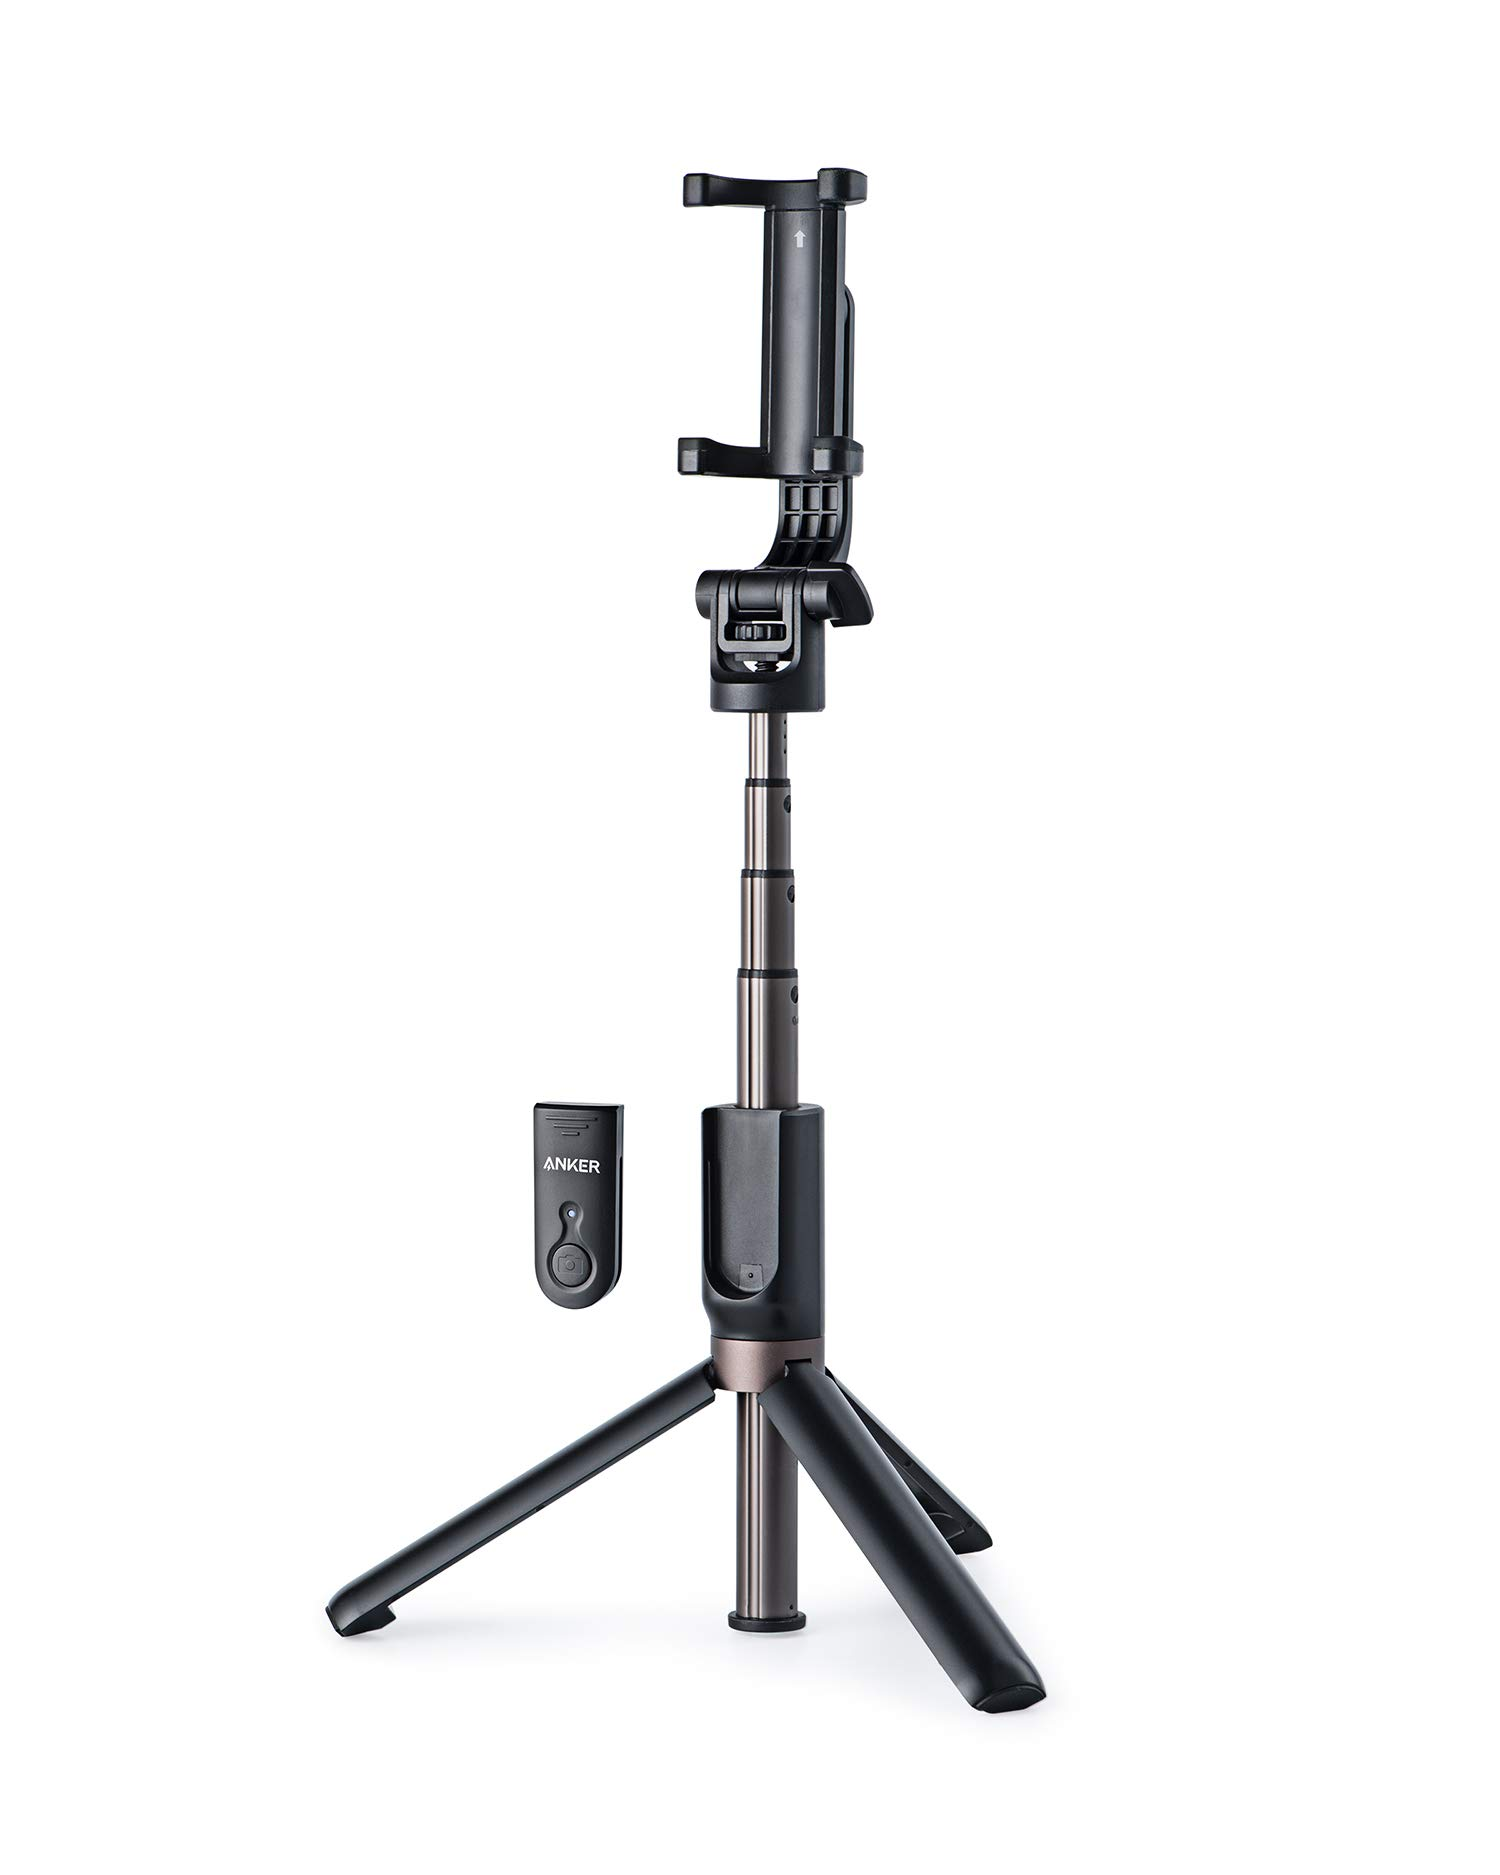 Anker Bluetooth Selfie Stick, Extendable and Tripod Stand Selfie Stick with Wireless Remote for iPhone XR/XS/X/8/8 Plus/7/7 Plus/Se/6s/6/6 Plus, Galaxy S9/S8/S7/S6, Android, GoPro, More